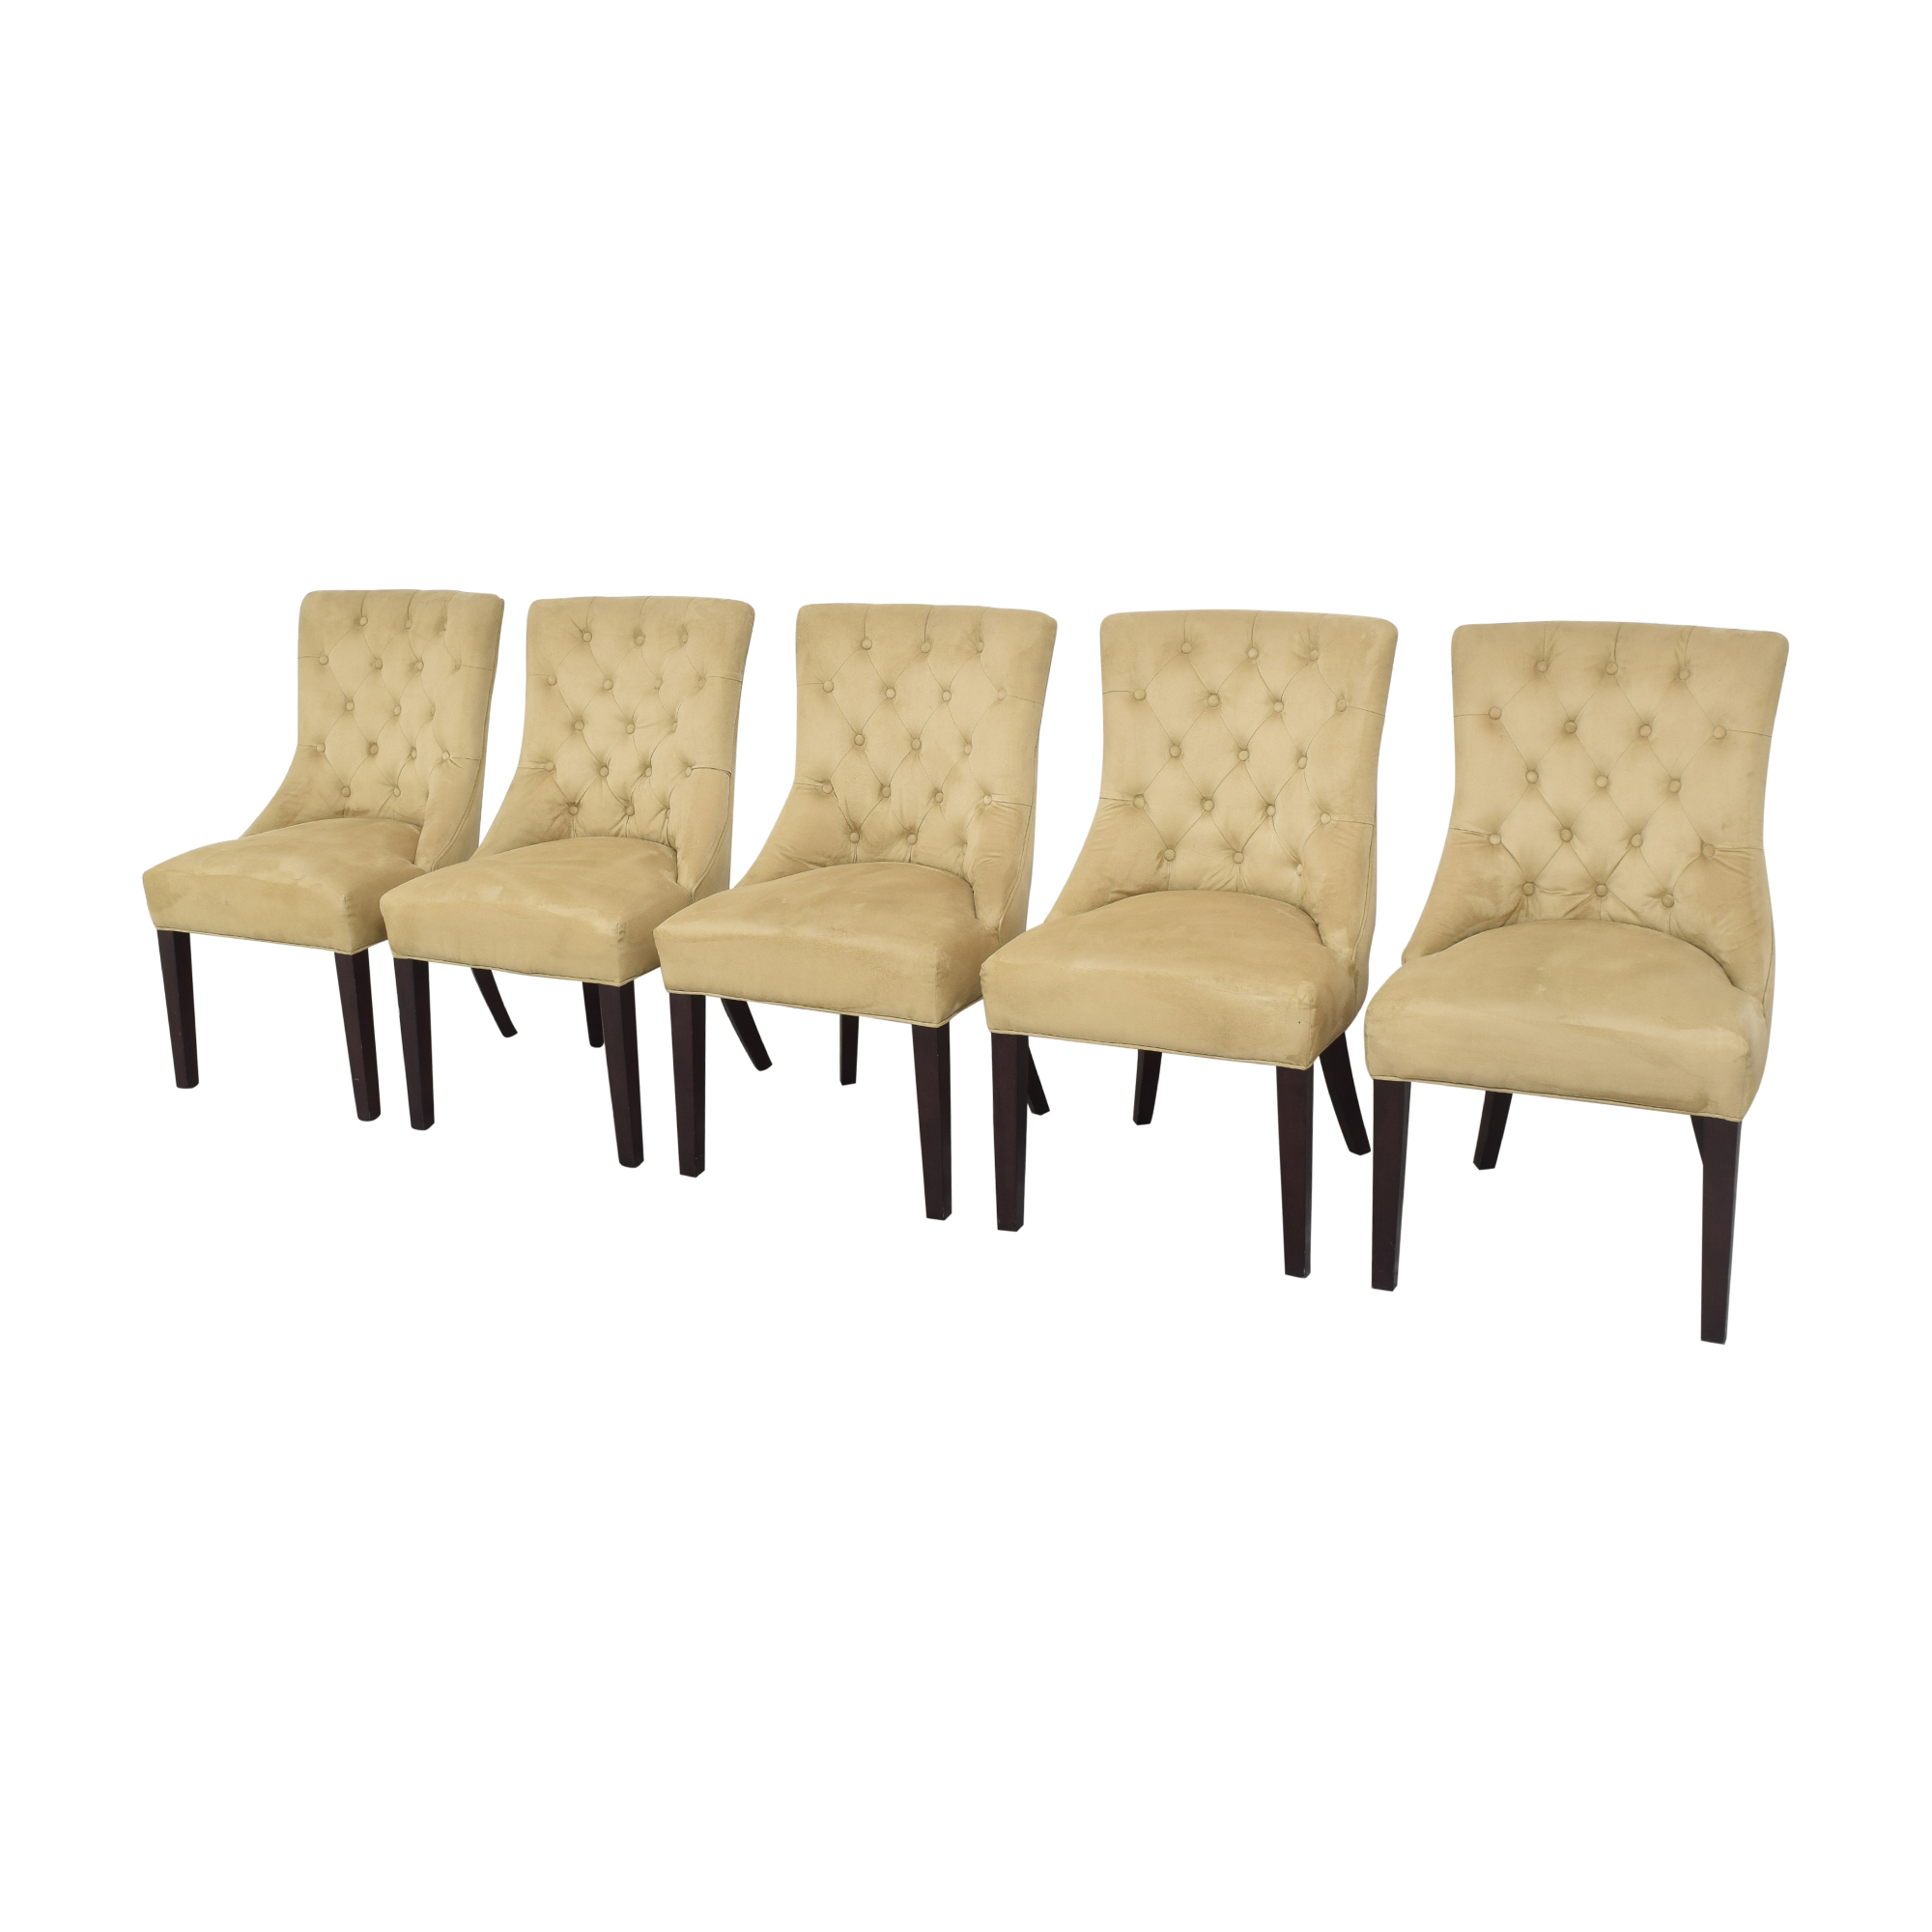 Pottery Barn Pottery Barn Hayes Tufted Dining Chairs used